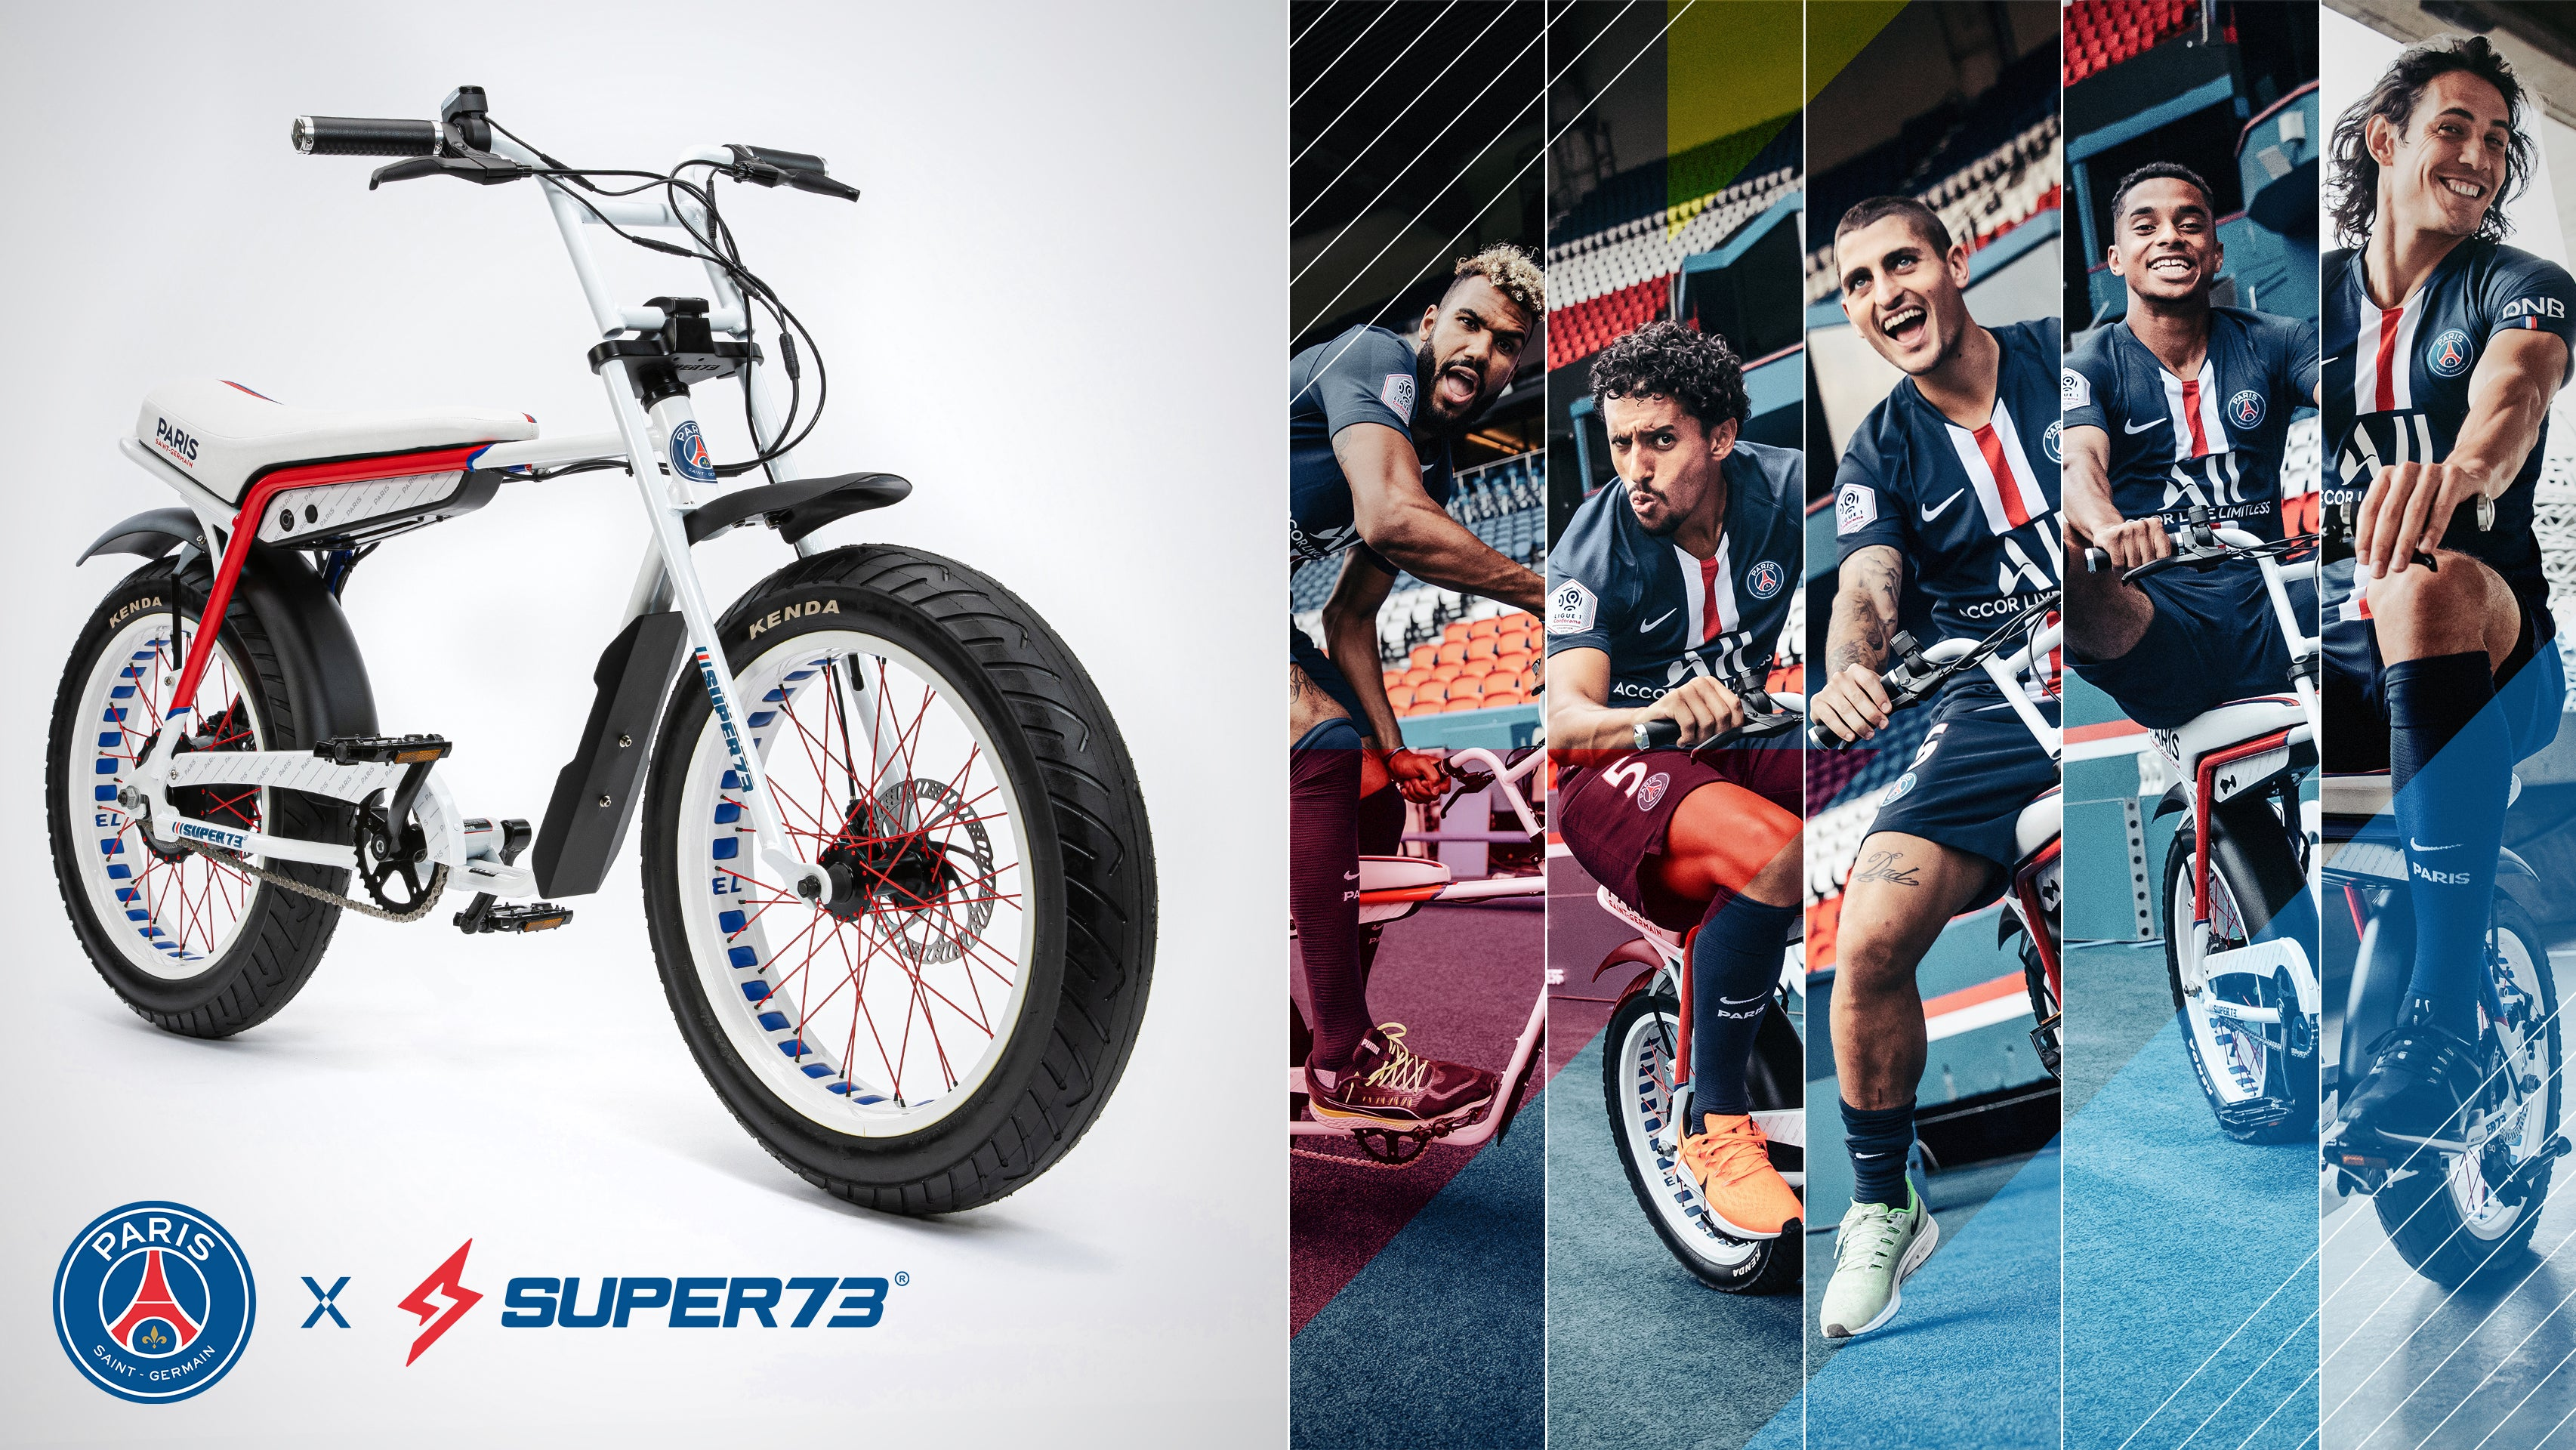 Paris Saint-Germain x Super73